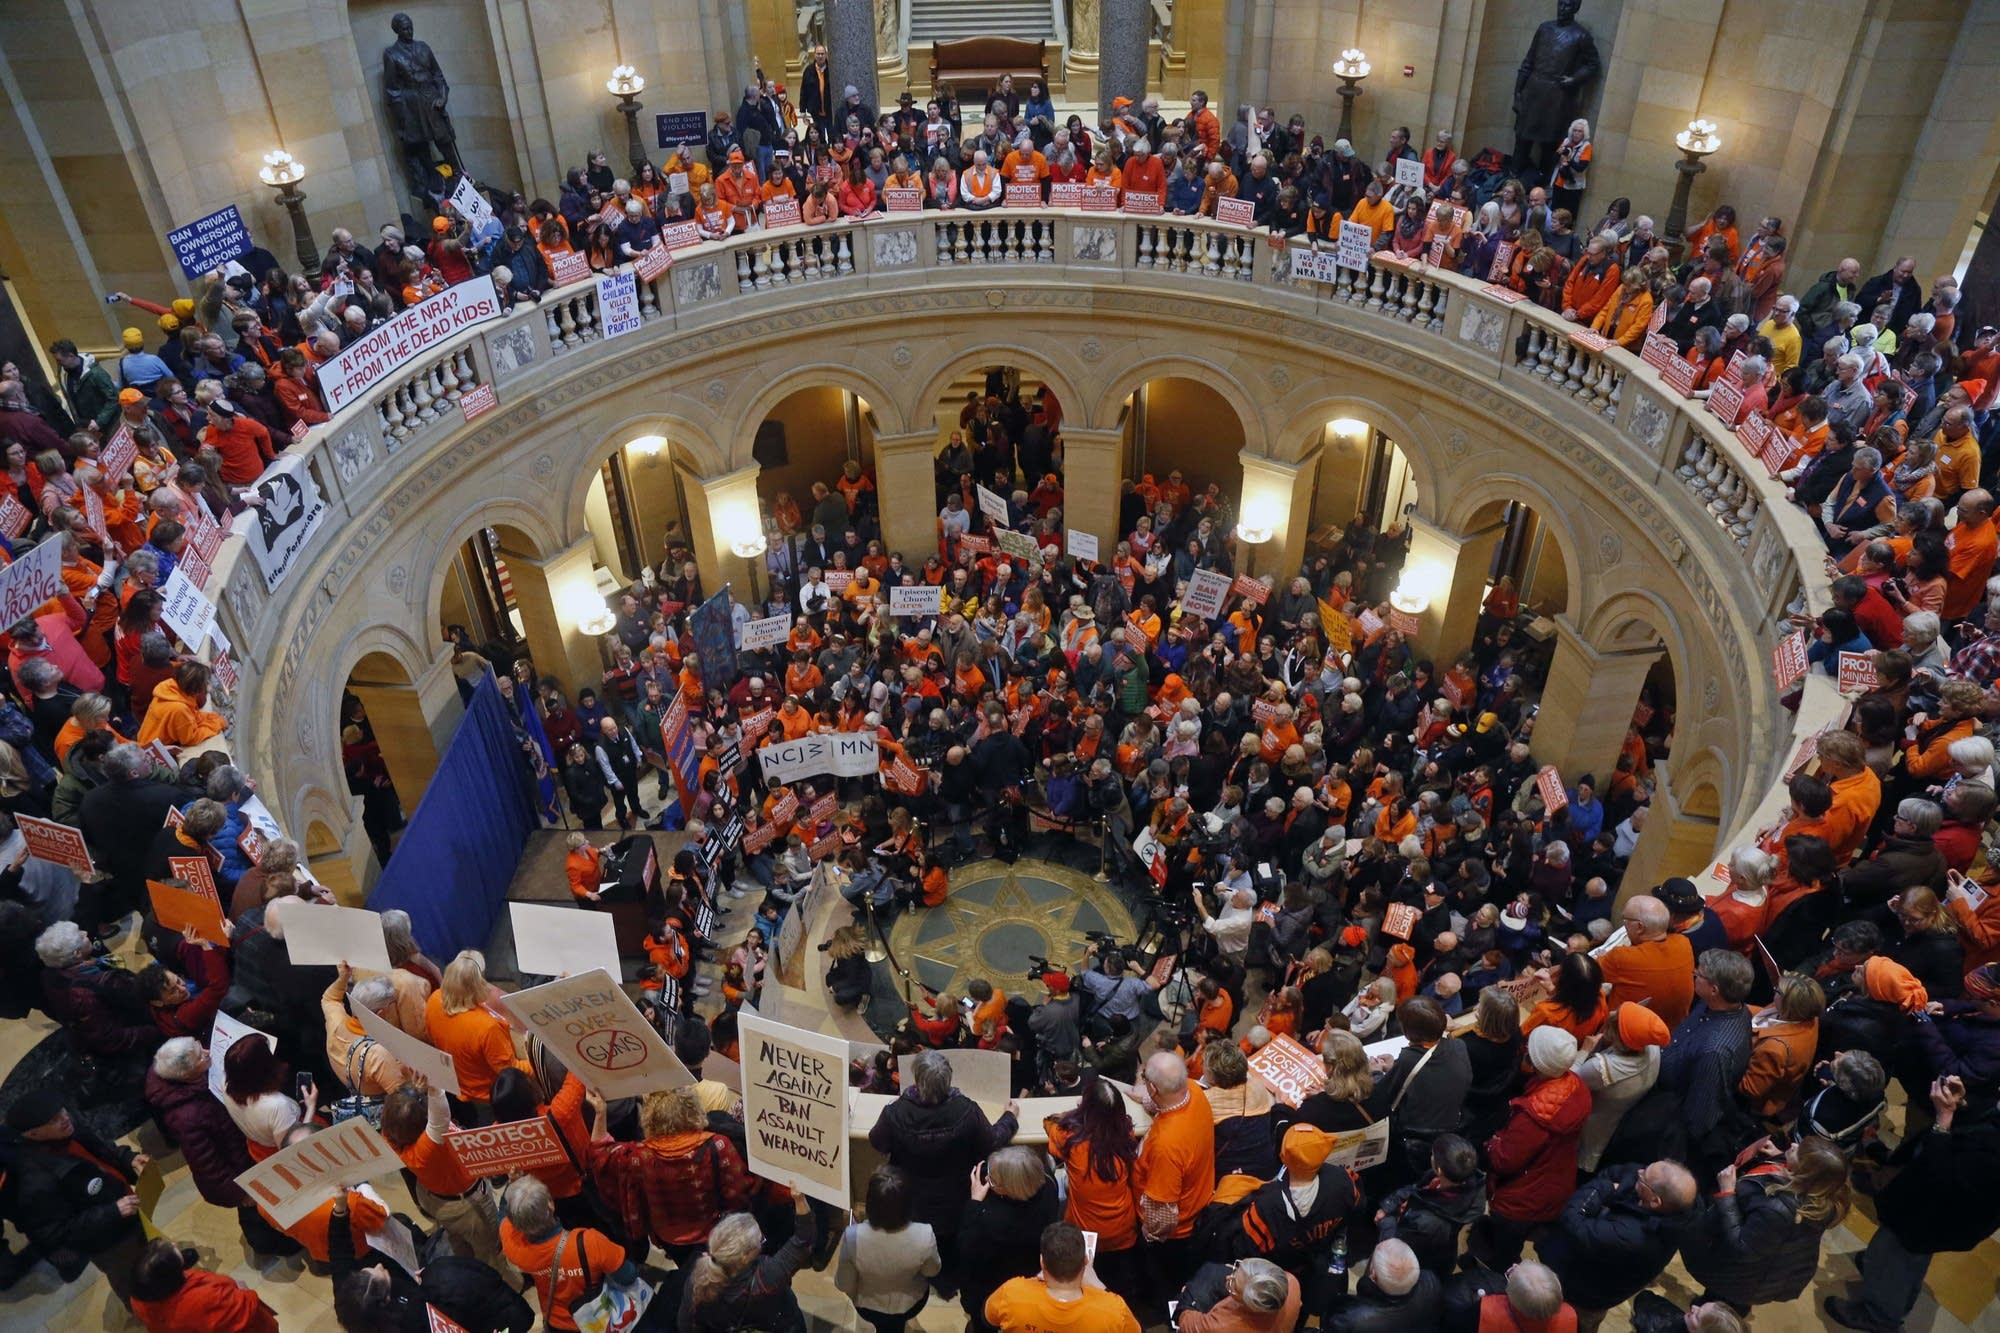 Hundreds rally at the State Capitol rotunda against gun violence.